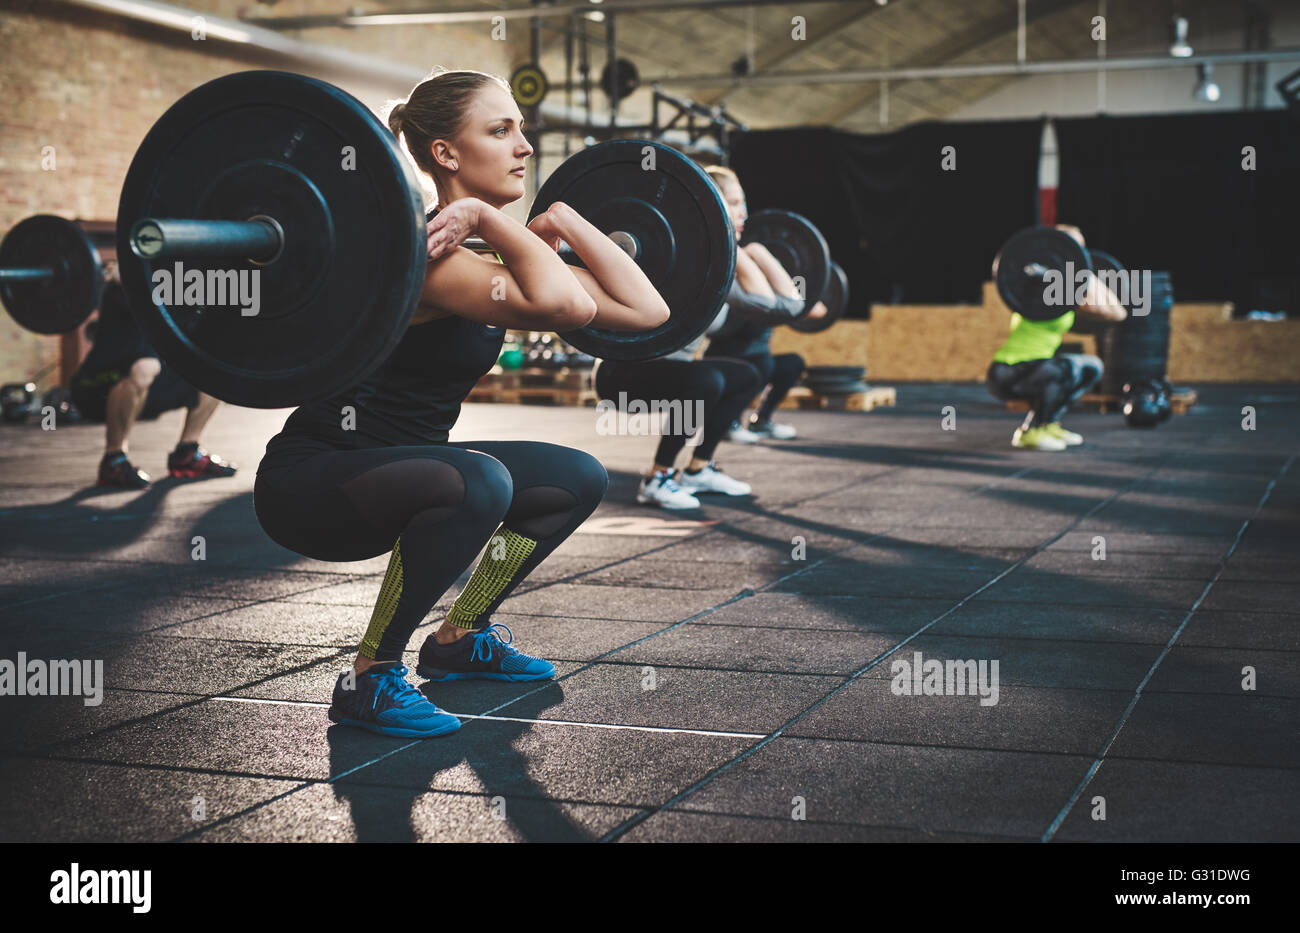 Fit young woman lifting barbells looking focused, working out in a gym with other people - Stock Image